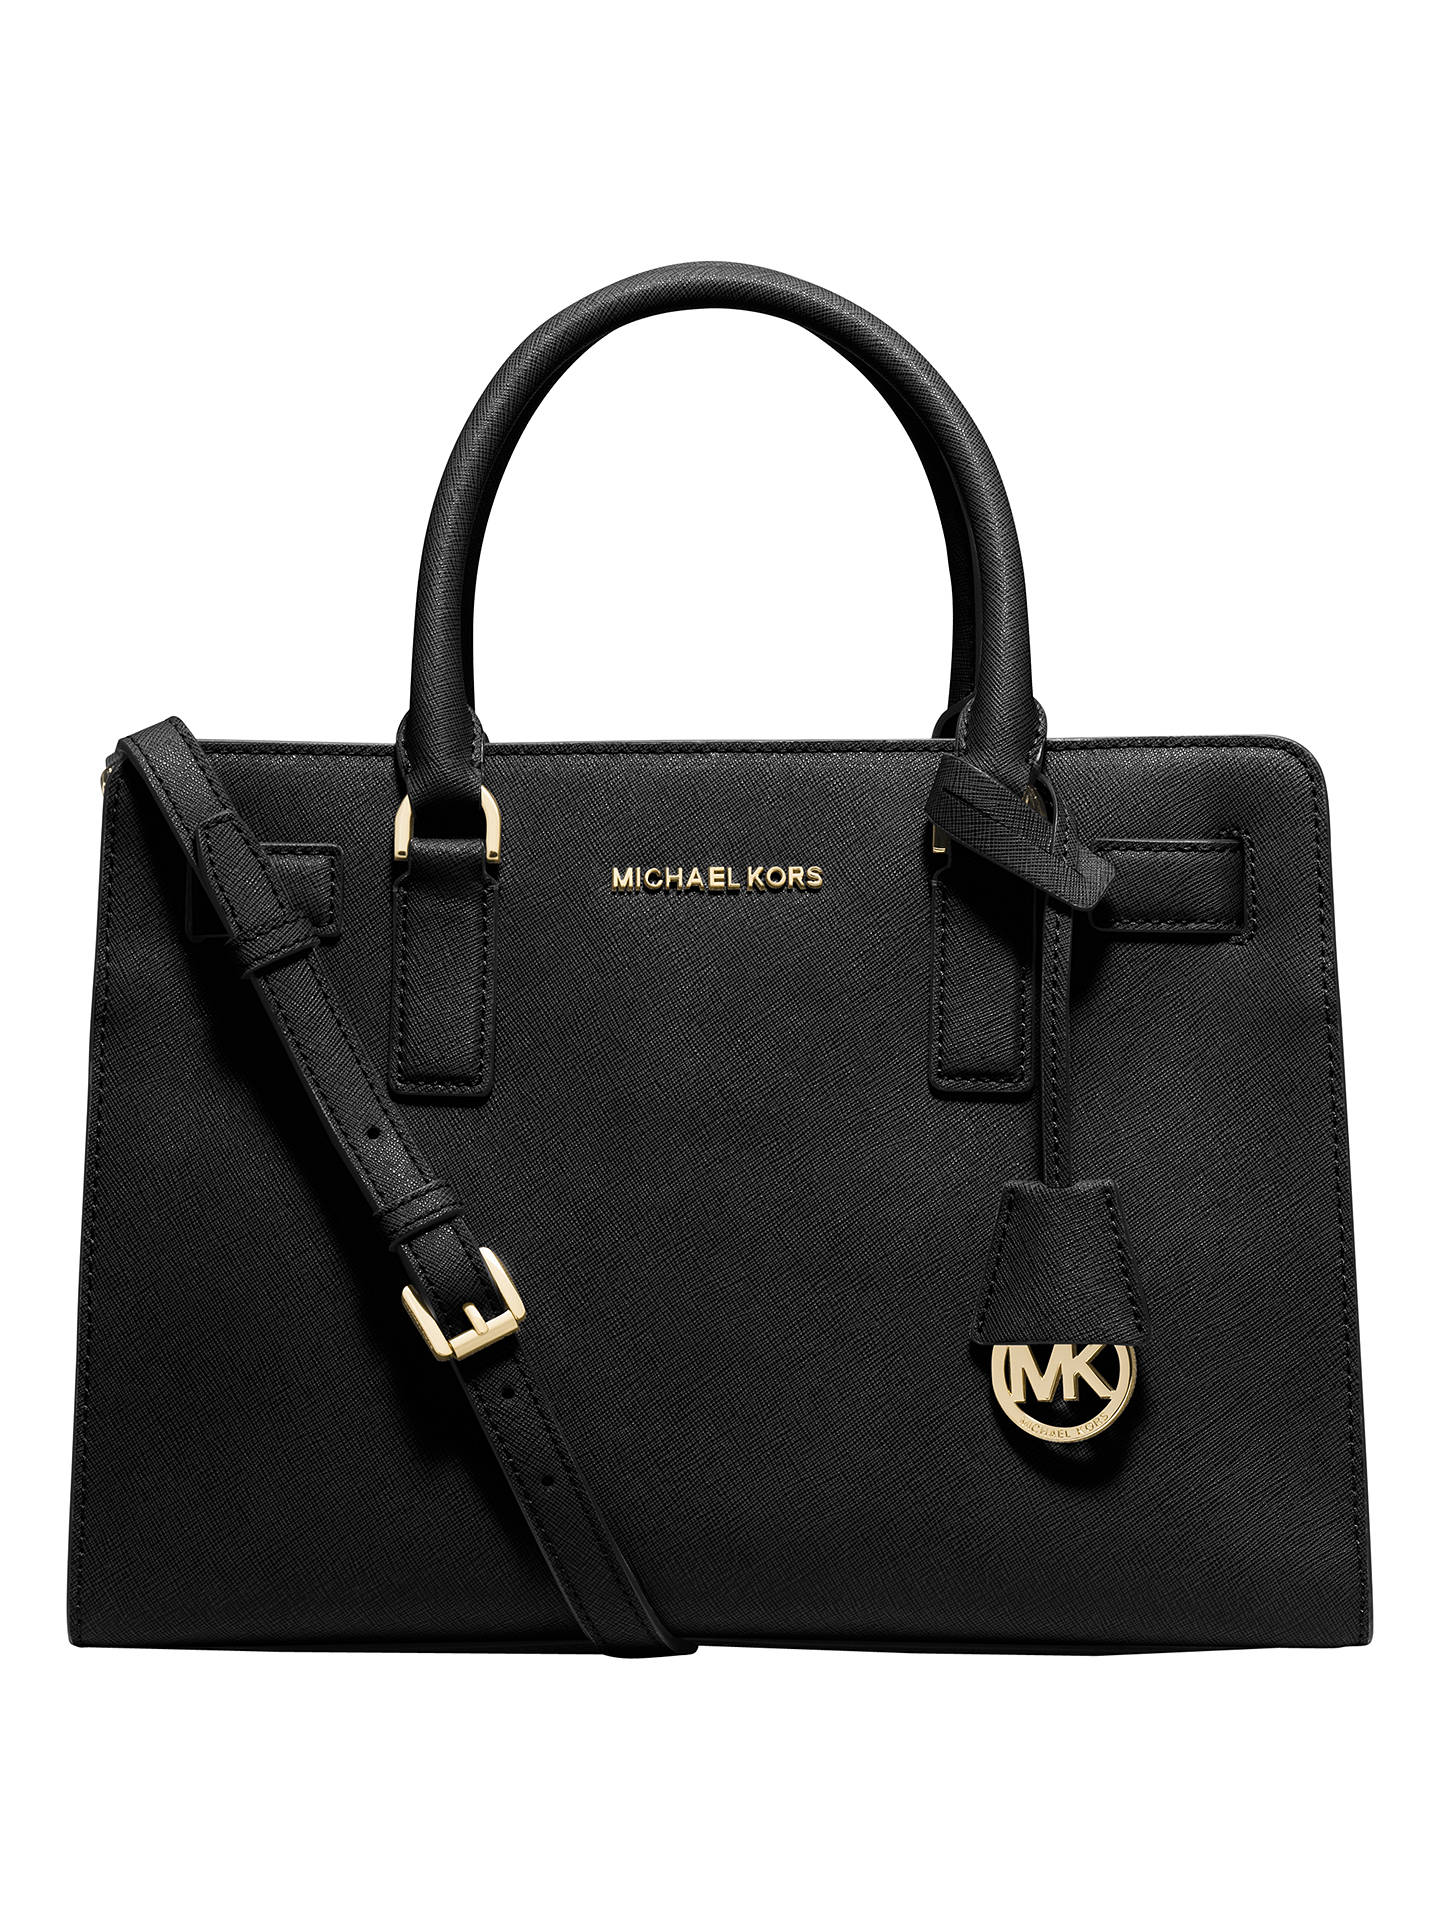 e9e76a9fddaa Buy MICHAEL Michael Kors Dillon Top Zip East/West Leather Satchel, Black  Online at ...